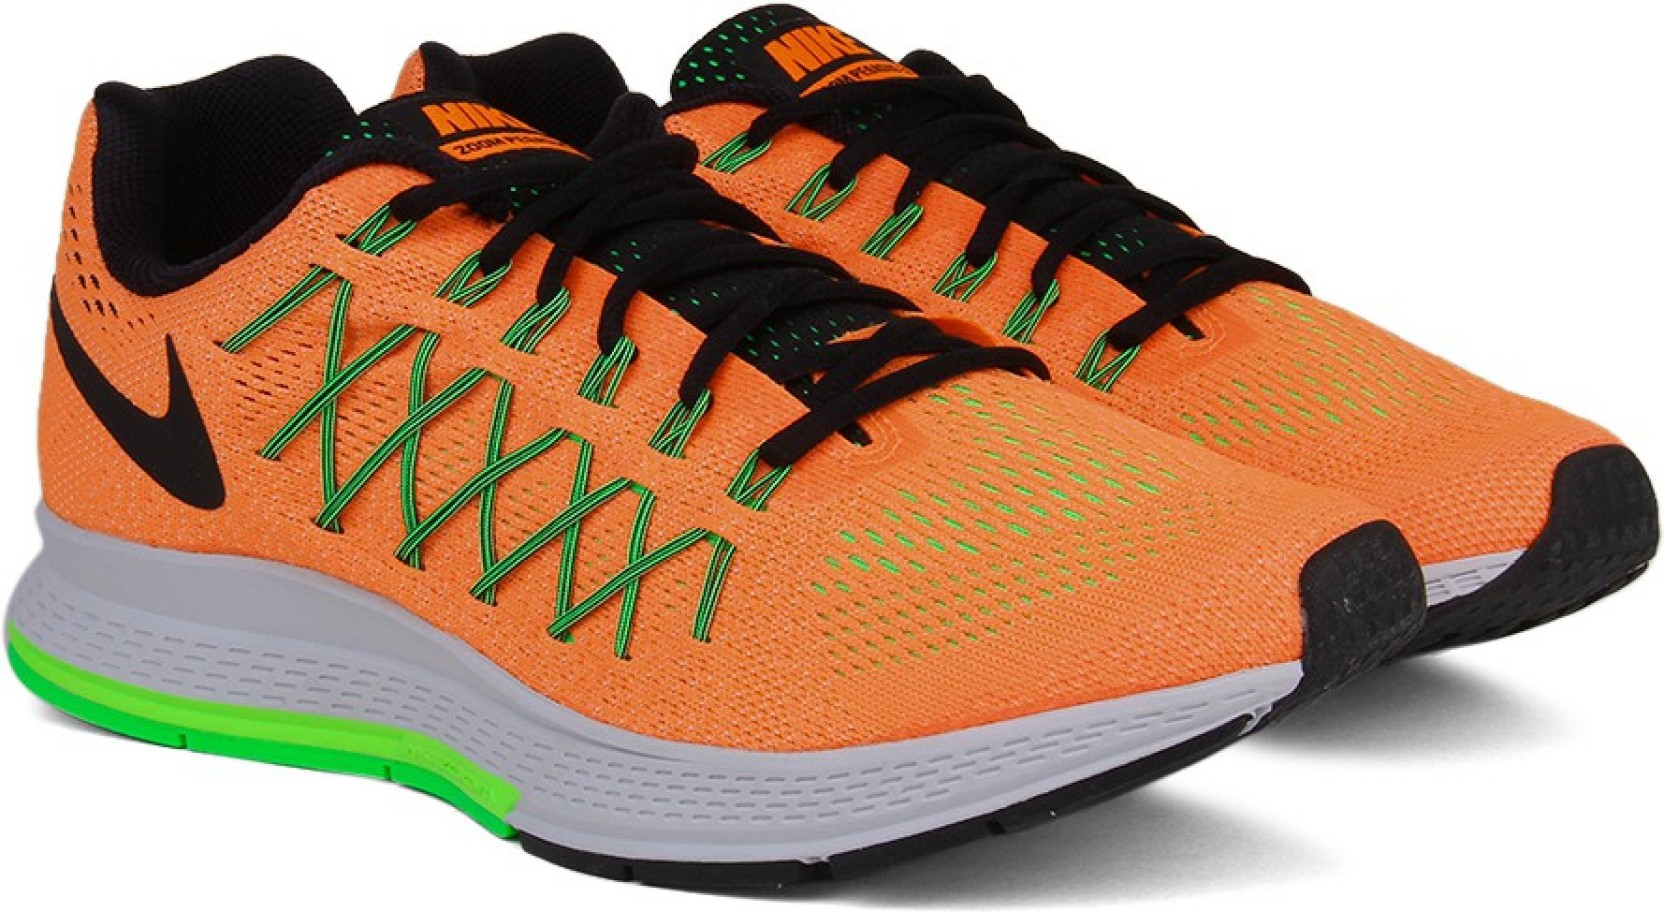 5a235a3376de Nike AIR ZOOM PEGASUS 32 Running Shoes For Men - Buy Total Orange ...